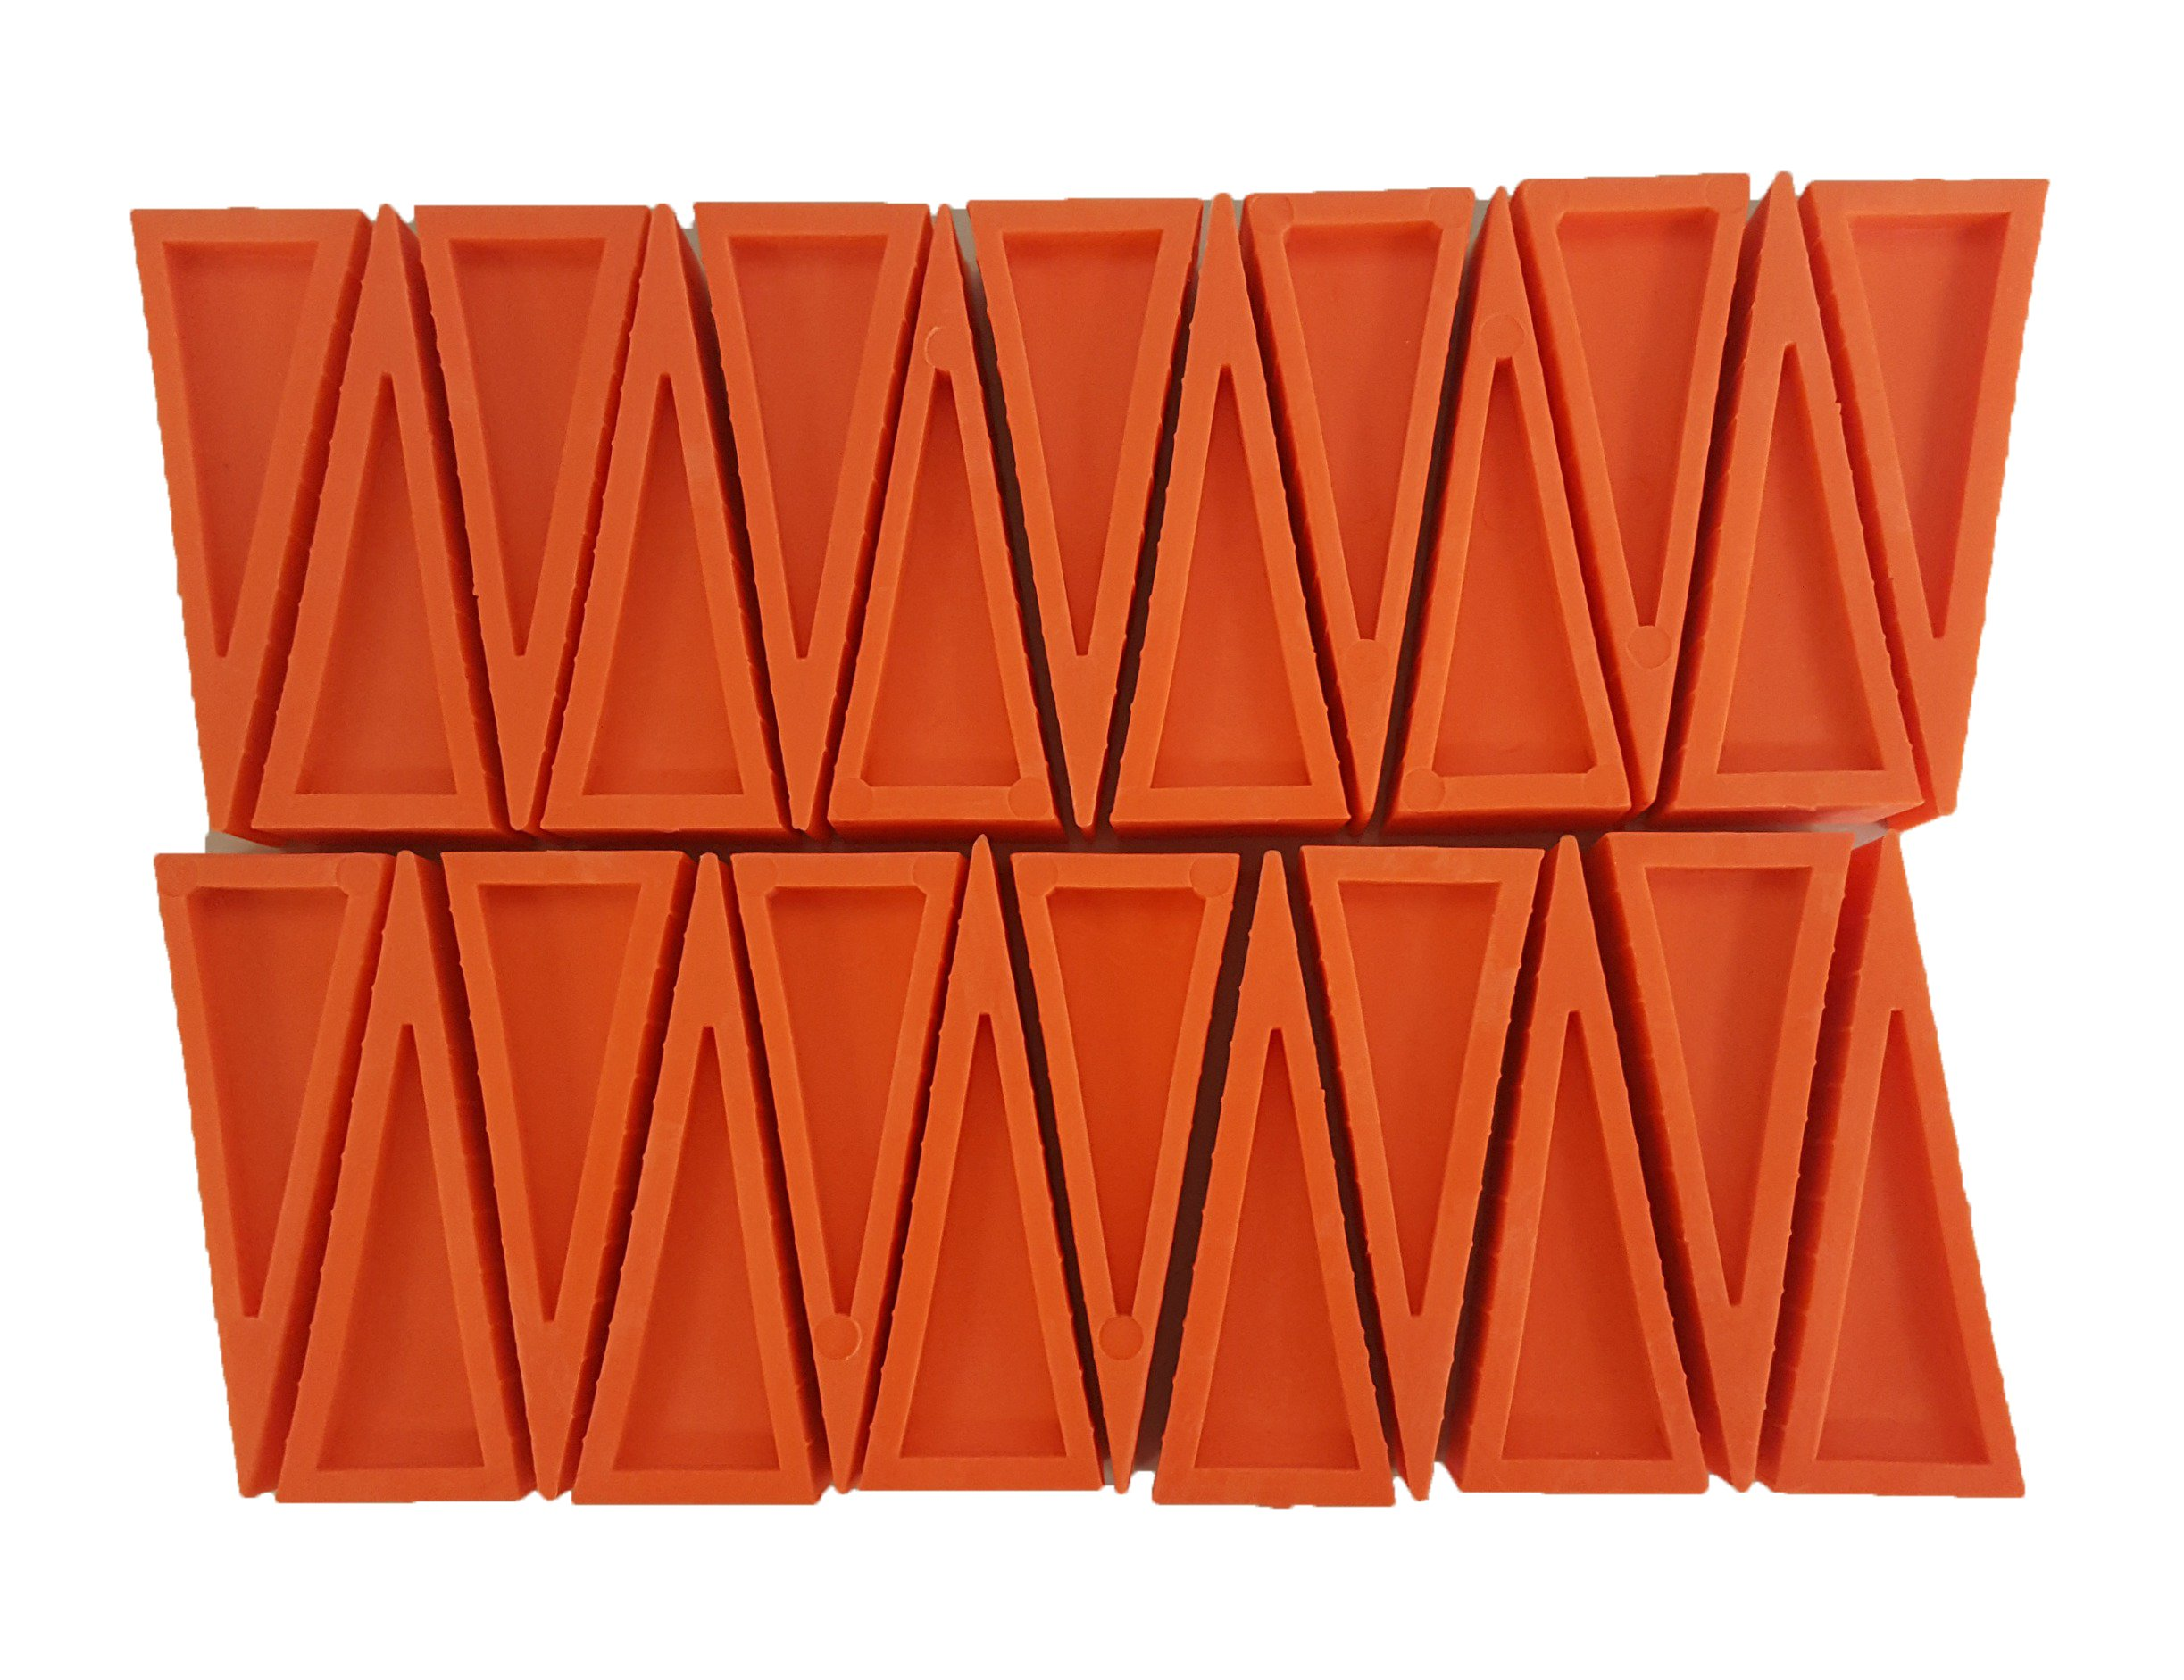 LINE2design Premium Door Sprinkler Wedges - Firefighter Door Stopper - Heavy Duty Plastic Door Stoppers - Firefighter Rubber Doorstops Safety Doors Opener (Pack of 25, Orange)